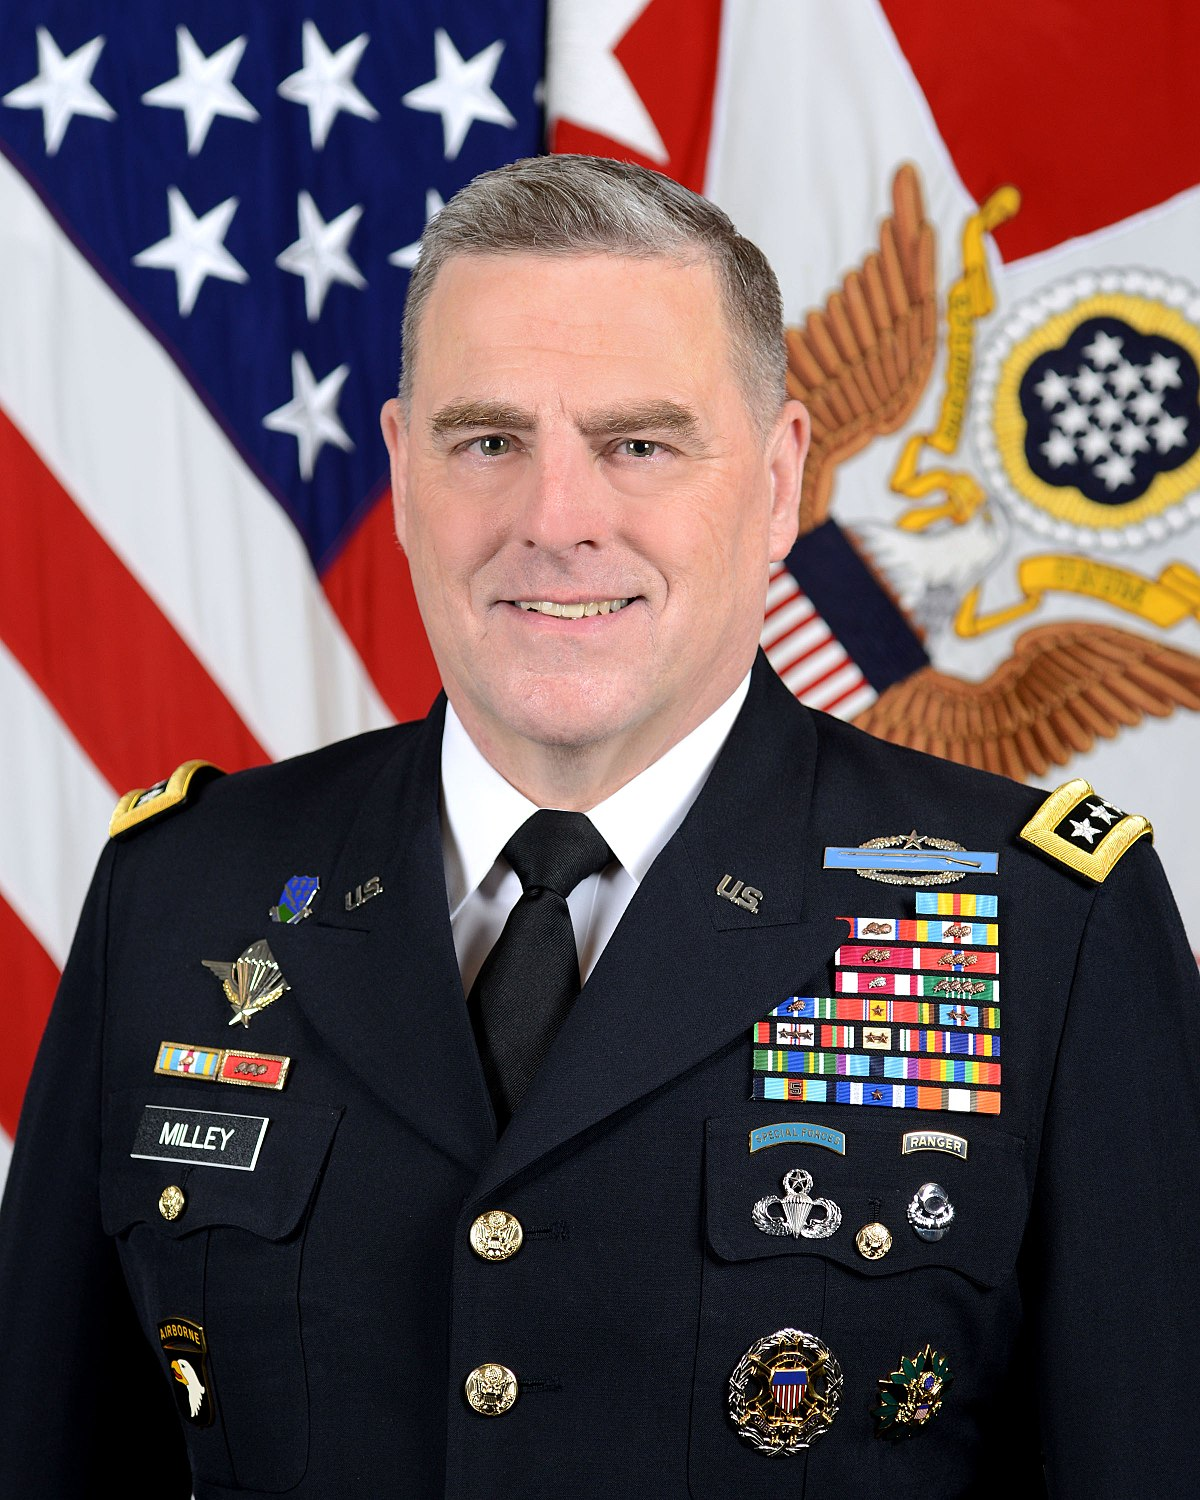 United States Army Chief of Staff General Mark A. Milley